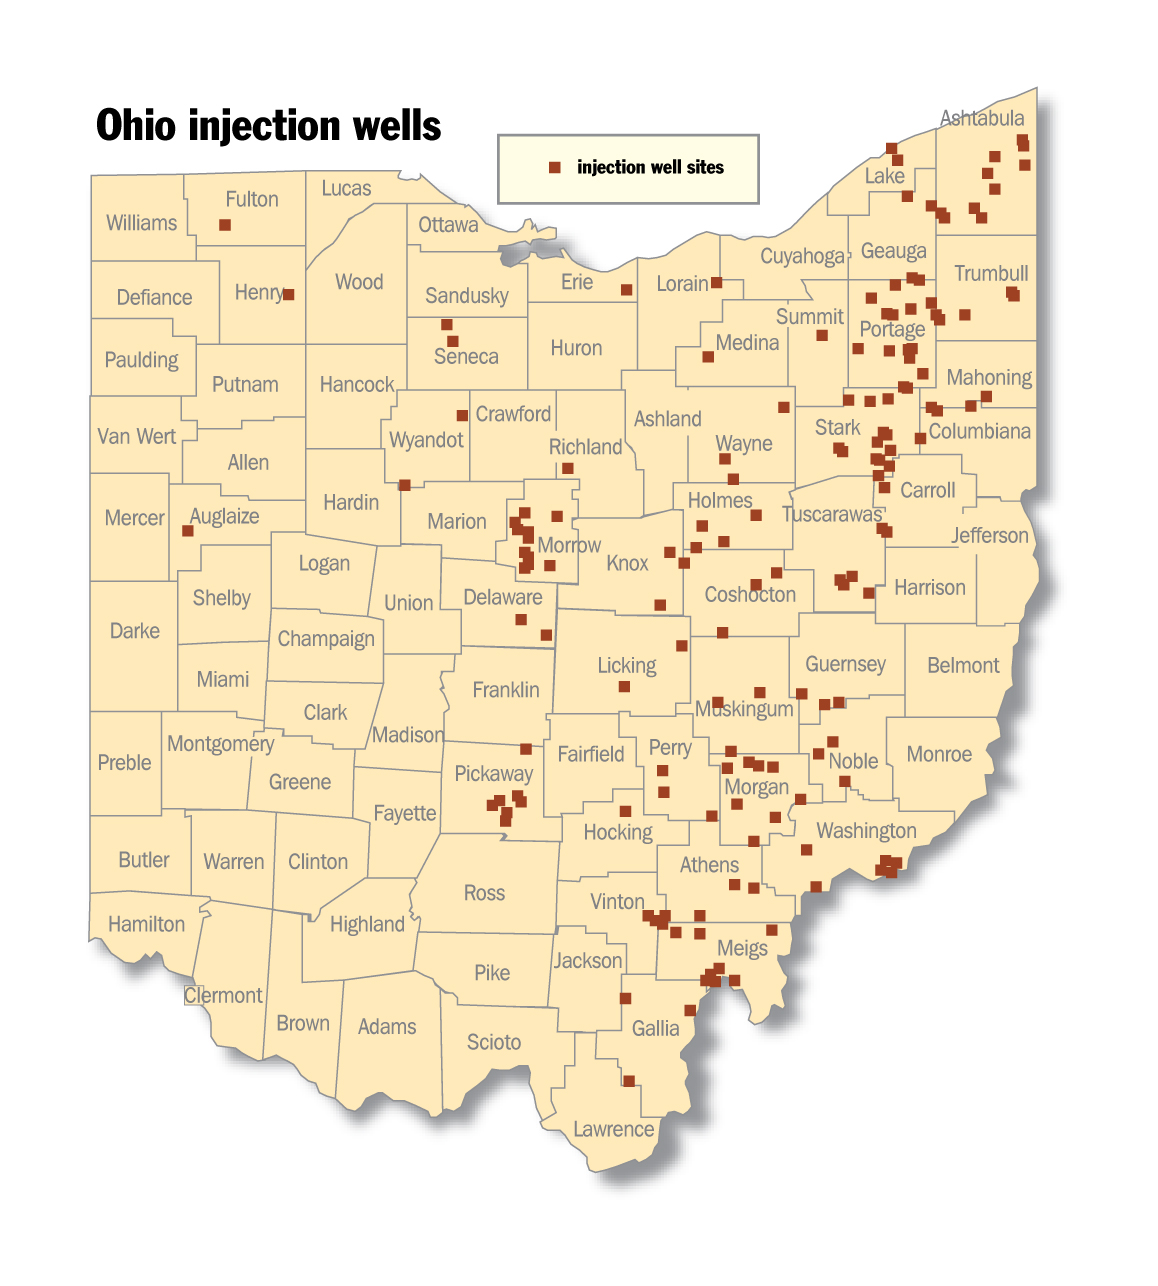 "A map of Ohio, with each of the counties labeled. The title of the map is ""Ohio injection wells."" The key shows that a small red square on the map indicates an injection well site. There is one square each in Fulton, Henry, Erie, Lorain, Medina, Summit, Richland, Auglaize, and Hocking Counties. There are two each in Seneca, Lake, Wyandot, Delaware, and Licking Counties. Wayne, Perry, and Galia Counties each have three wells. Washington County has six wells, Pickaway County has seven wells, and Morrow and Ashtabula Counties each have ten wells. One well is on the border of Knox and Coshocton Counties, with two additional wells in Knox County and three additional wells in Coshocton County, including one on the border it shares with Holmes County. Holmes County has three additional wells. Two wells are situated on the border between Geauga and Portage Counties. In addition, Geauga County has two other wells, while Portage County has 15 other wells, including one on the border of Trumbull County and two on the border of Stark County. Trumbull County four wells in addition to the one on the Portage County border. Stark County has 13 wells in addition to the ones on the Portage County border; one of them is on the Columbiana County border, and two are on the Carroll County border. Columbiana County has three additional wells, all of which sit on the Mahoning County border. Mahoning County has one well in addition to the ones on the Columbiana border. In addition to the wells on the Stark County border, Carroll County has one well in its interior, and two on the border it shares with Tuscarawas County. Tuscarawas County has four additional wells. Muskingum County has a total of three wells, one of which sits on the border of Morgan County. Morgan County has eight additional wells. Guernsey County has three wells, with two of them sitting on the border of Noble County. Nobel County has three additional wells. Athens County has a total of four wells, one of which is on the border it shares with Vinton County. Vinton County has one additional well in its interior and one additional well on its border with Meigs County. Meigs County has eight additional wells, one of which is on the Galia County border. There are no wells in Williams, Defiance, Paulding, Van Wert, Mercer, Darke, Preble, Butler, Hamilton, Clermont, Warren, Montogomer, Miami, Shelby, Allen, Punam, Lucas, Wood, Hancock, Hardin, Logan, Champaign, Clark, Greene, Clinton, Brown, Adams, Highland, Fayette, Madison, Union, Marion, Sandusky, Ottawa, Huron, Crawford, Franklin, Ross, Pike, Scioto, Lawrence, Jackson, Fairfield, Ashland, Cuyahoga, Jefferson, Harrison, Belmont, or Monroe Counties."